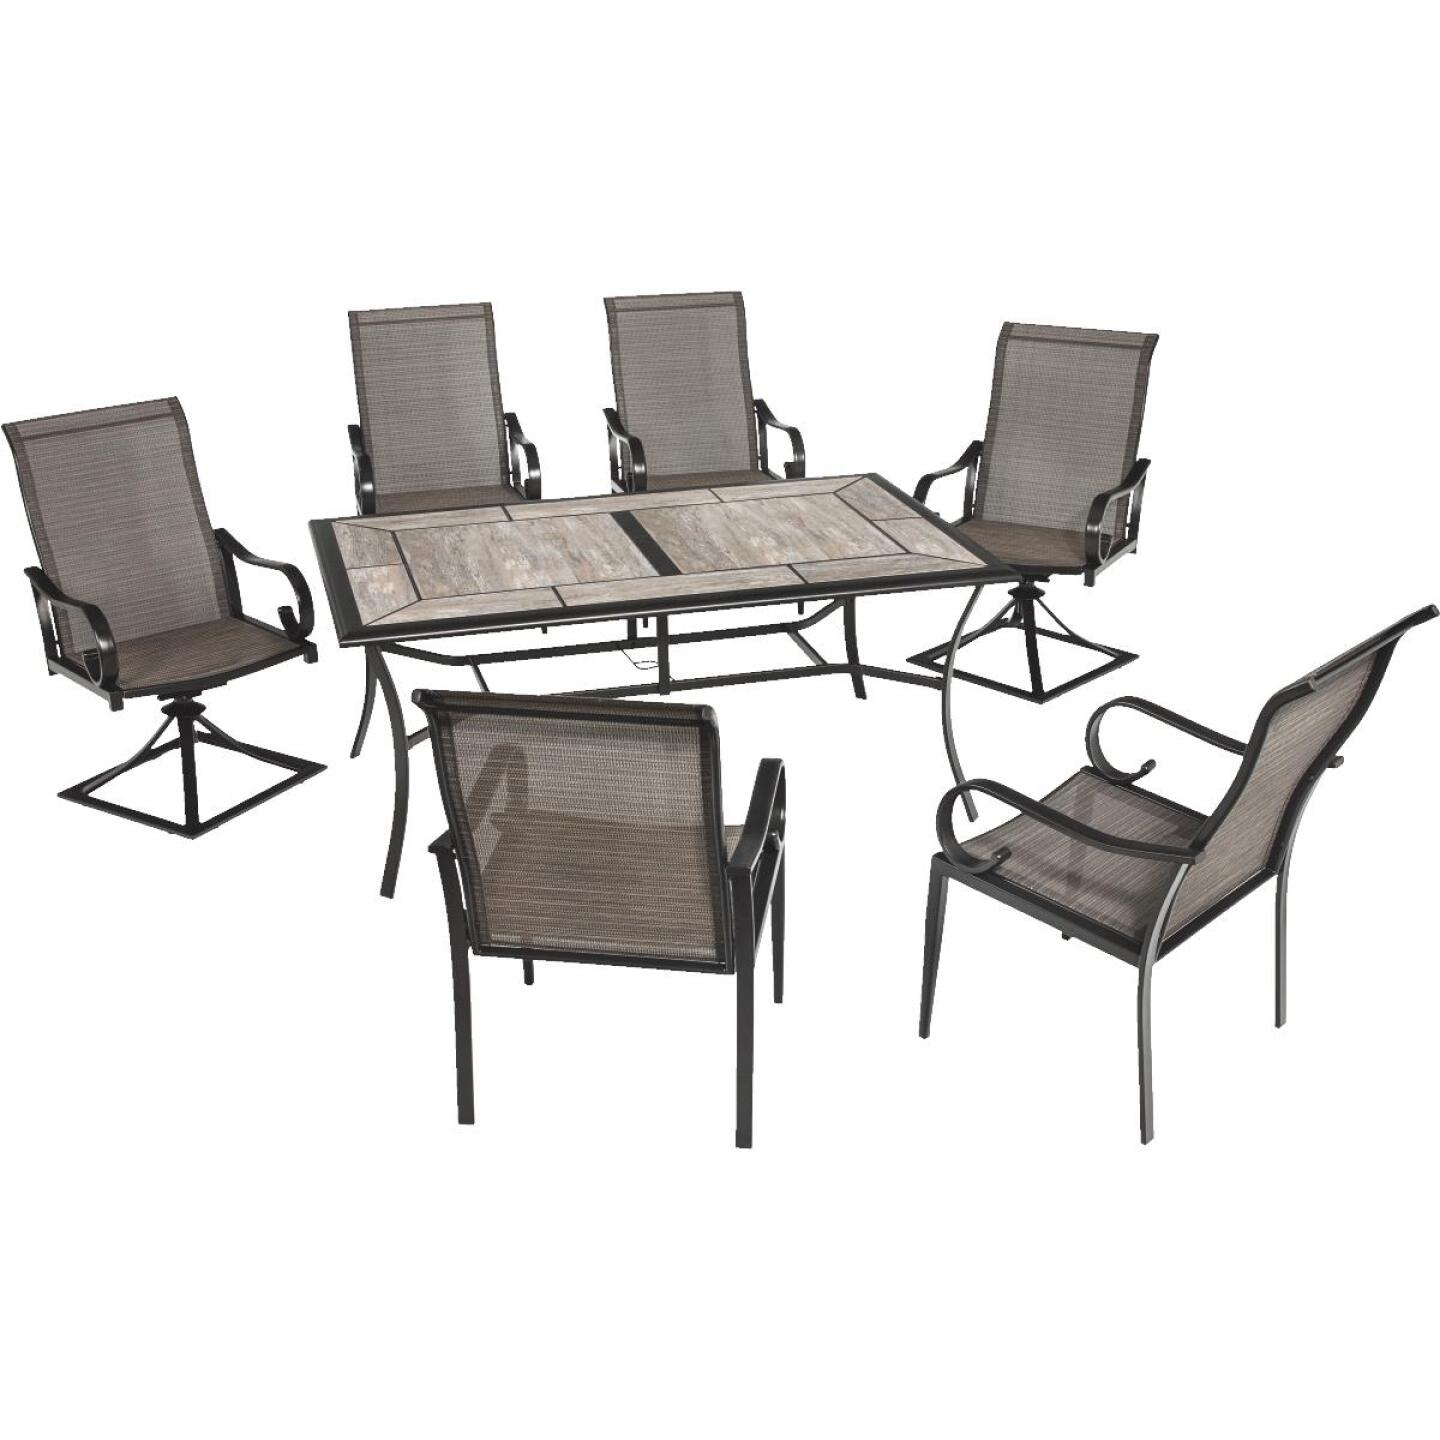 Outdoor Expressions Berkshire 7-Piece Dining Set Image 282